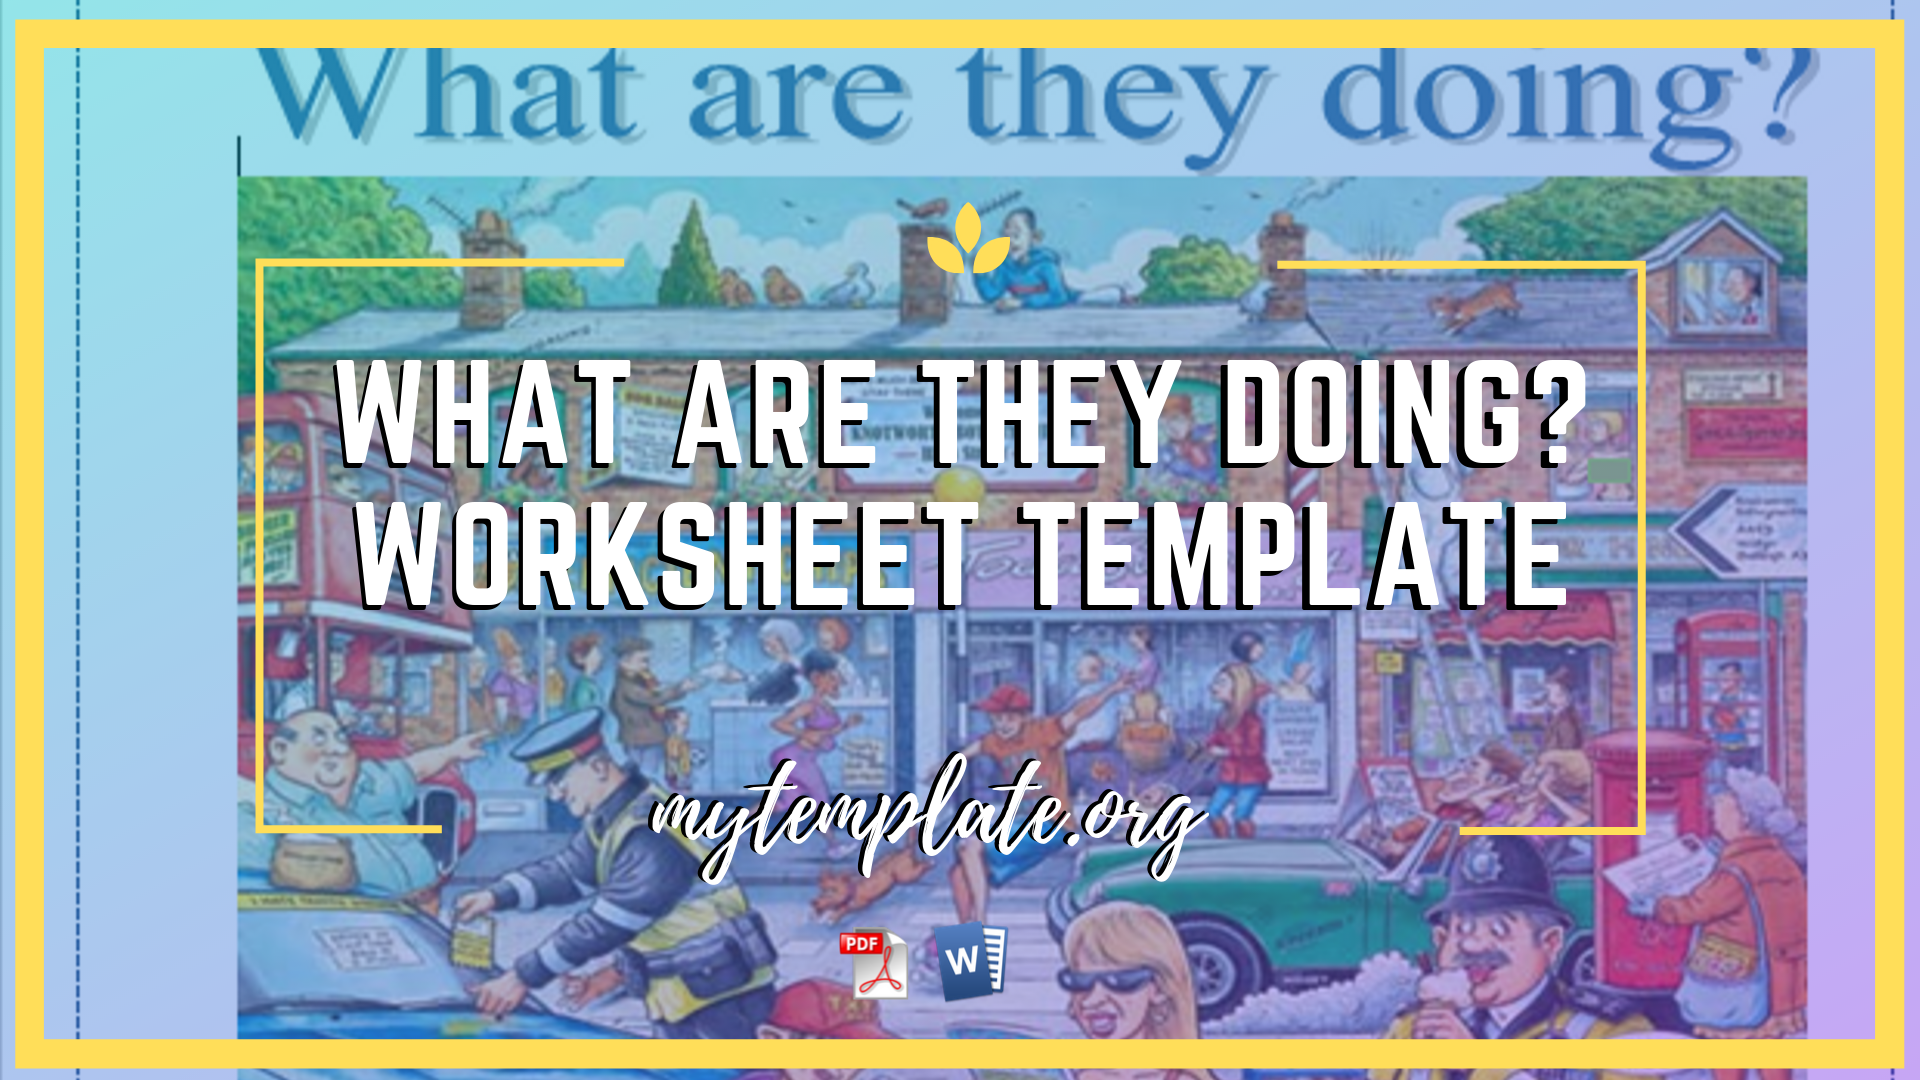 What are they doing? Worksheet Template